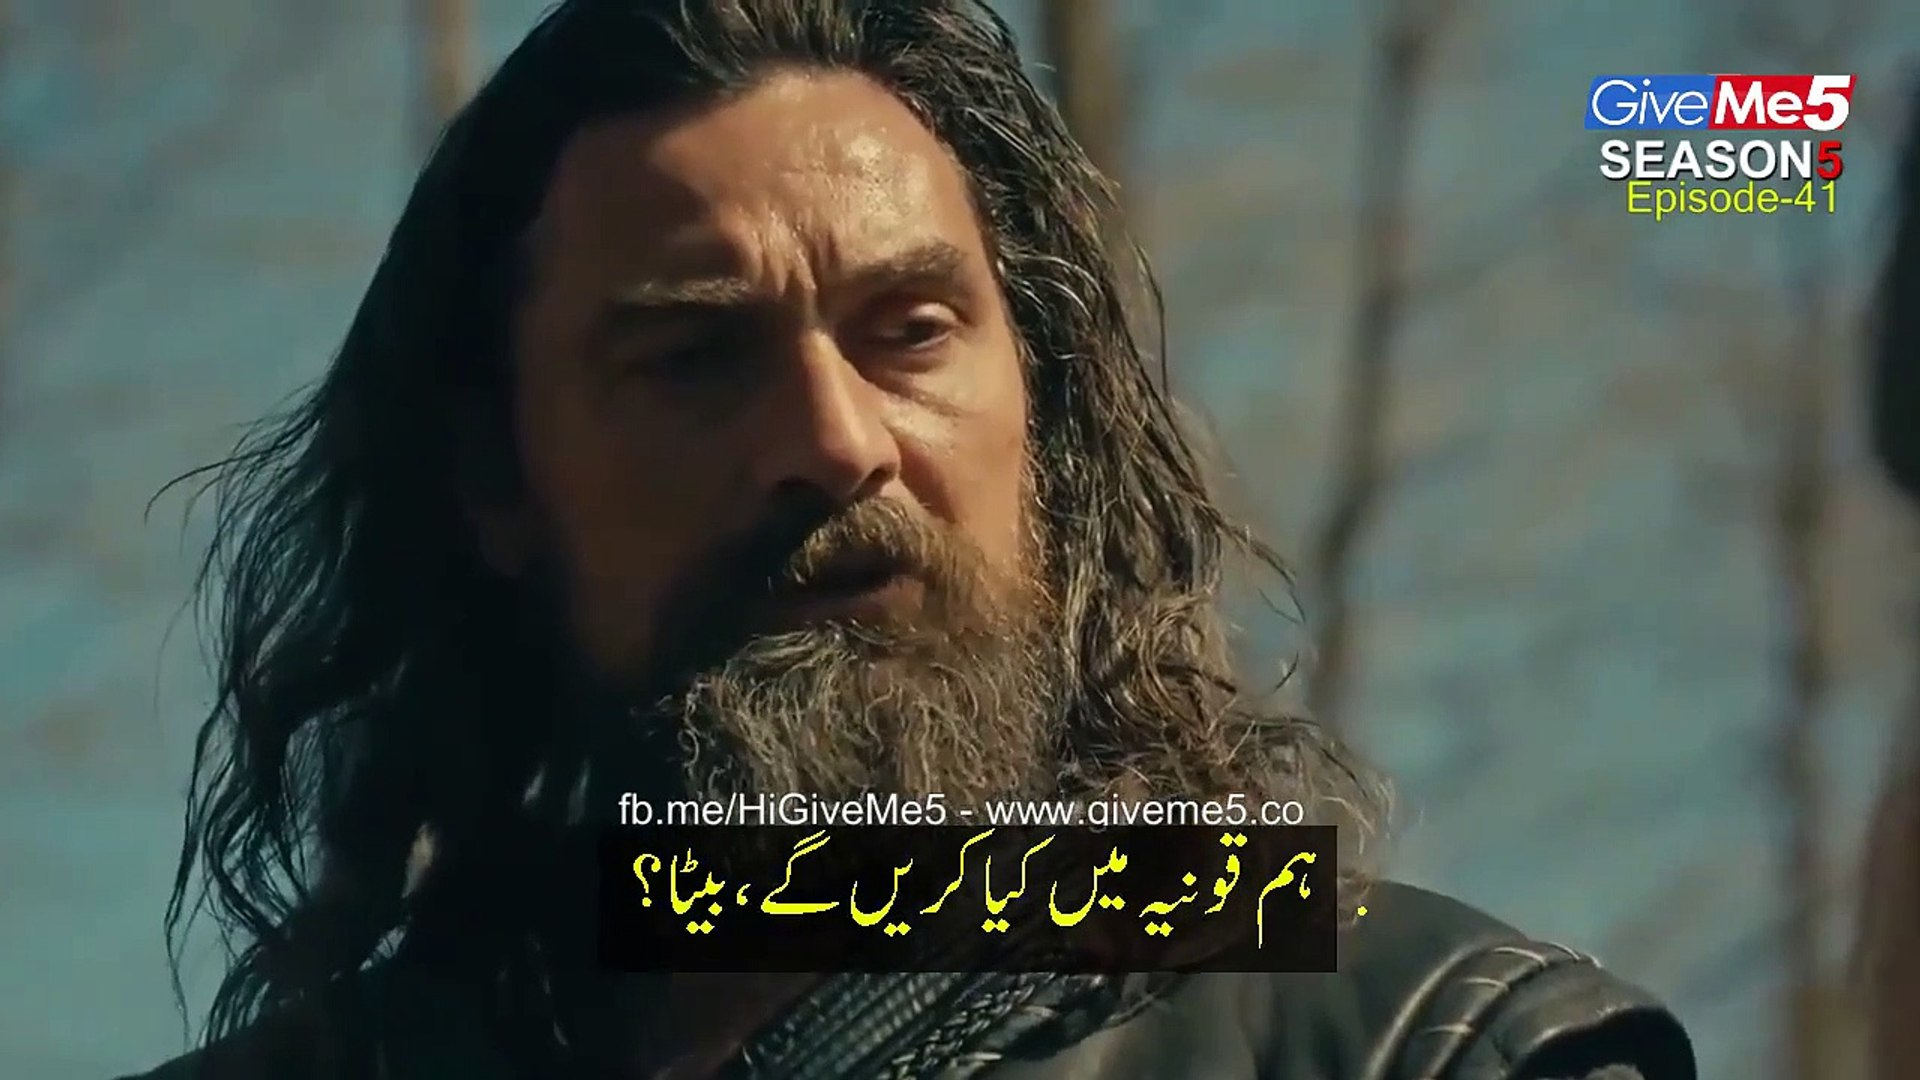 Dirilis Ertugrul Ghazi Season 5 in Urdu Subtitle Episode 41 & 42